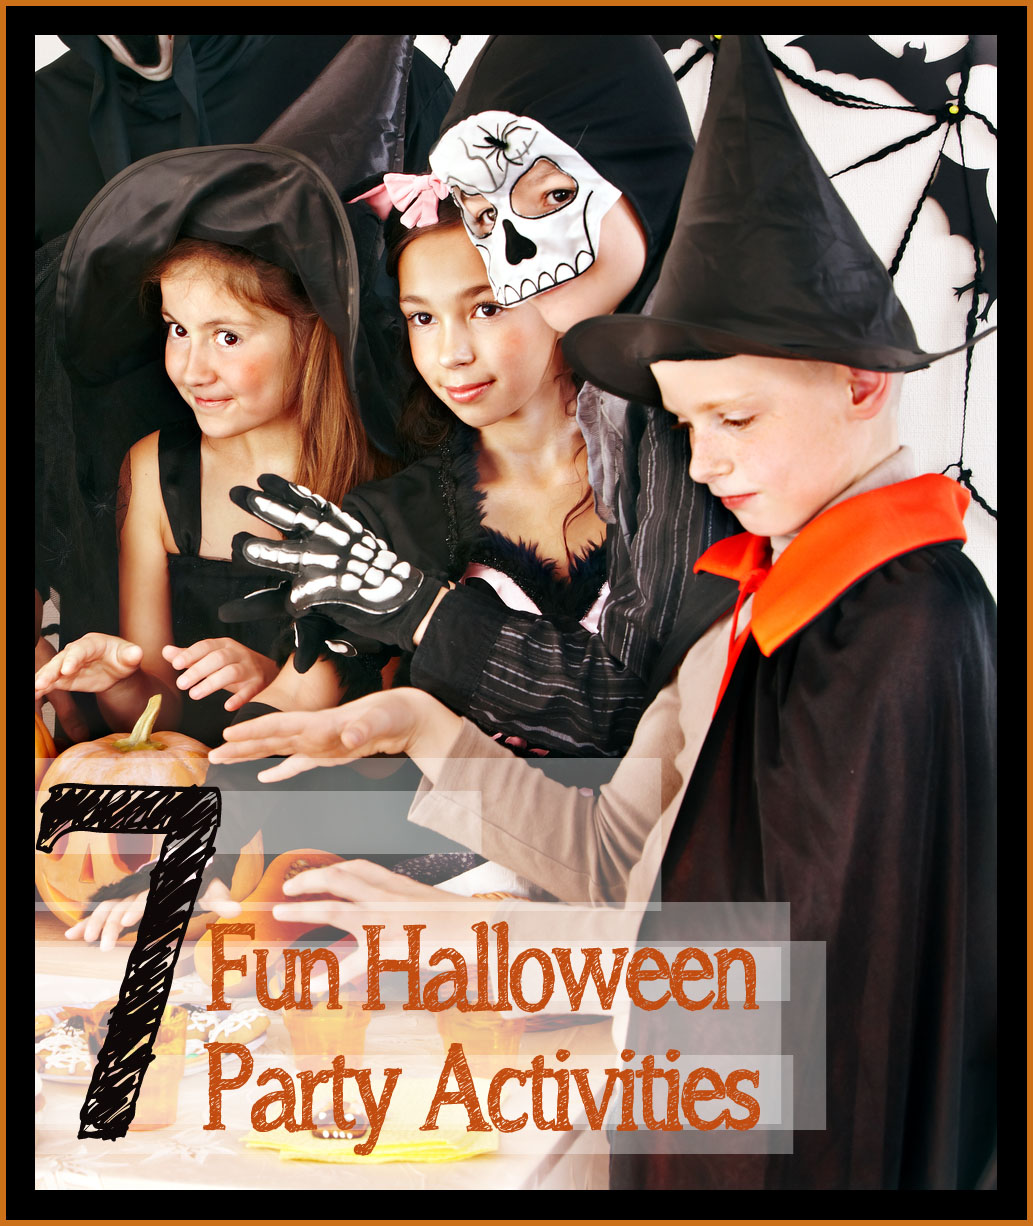 7 Fun Halloween Party Activities -